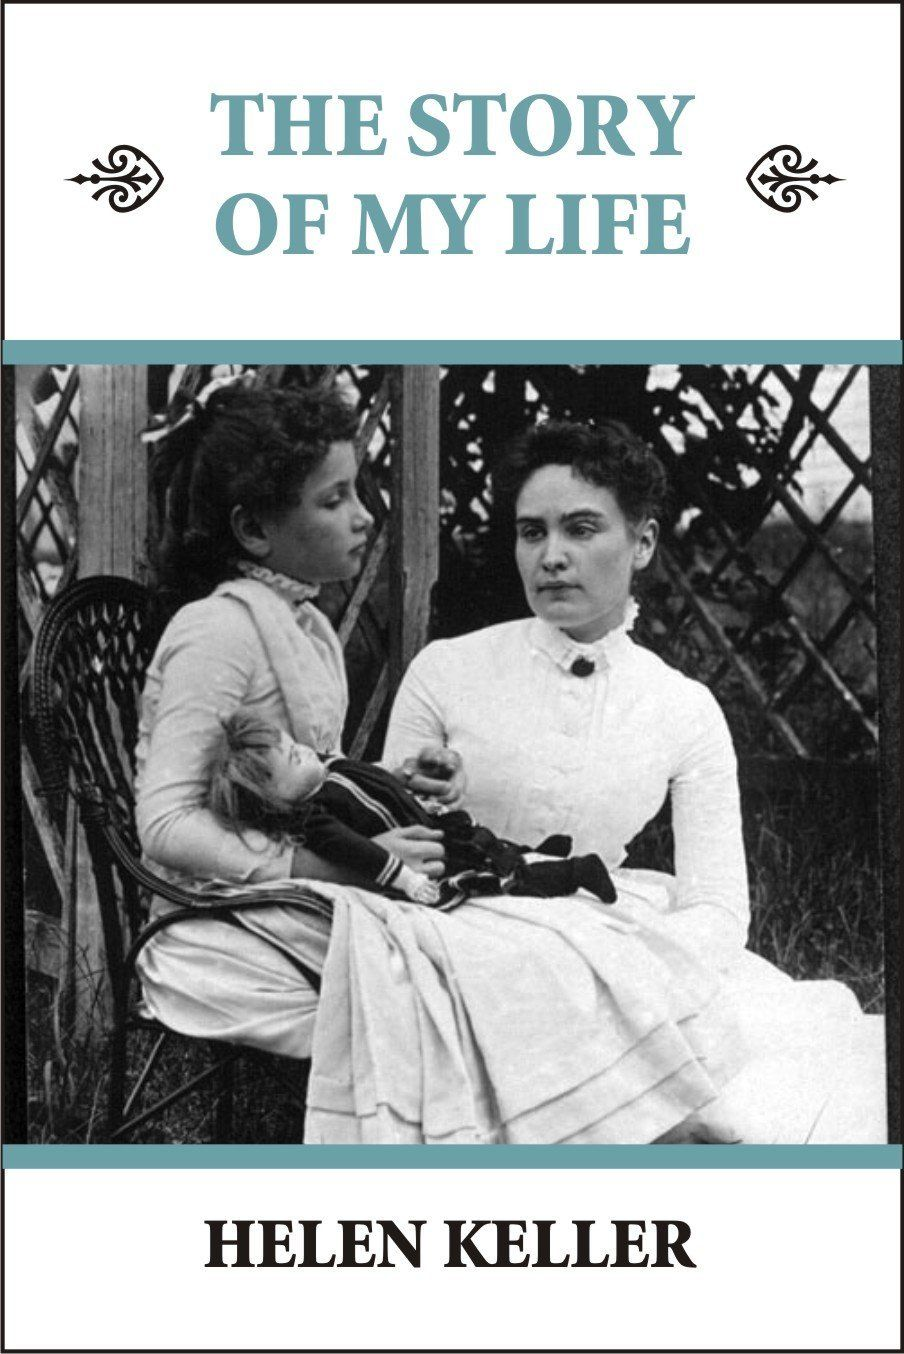 The Story Of My Life By Helen Keller With Images Women In